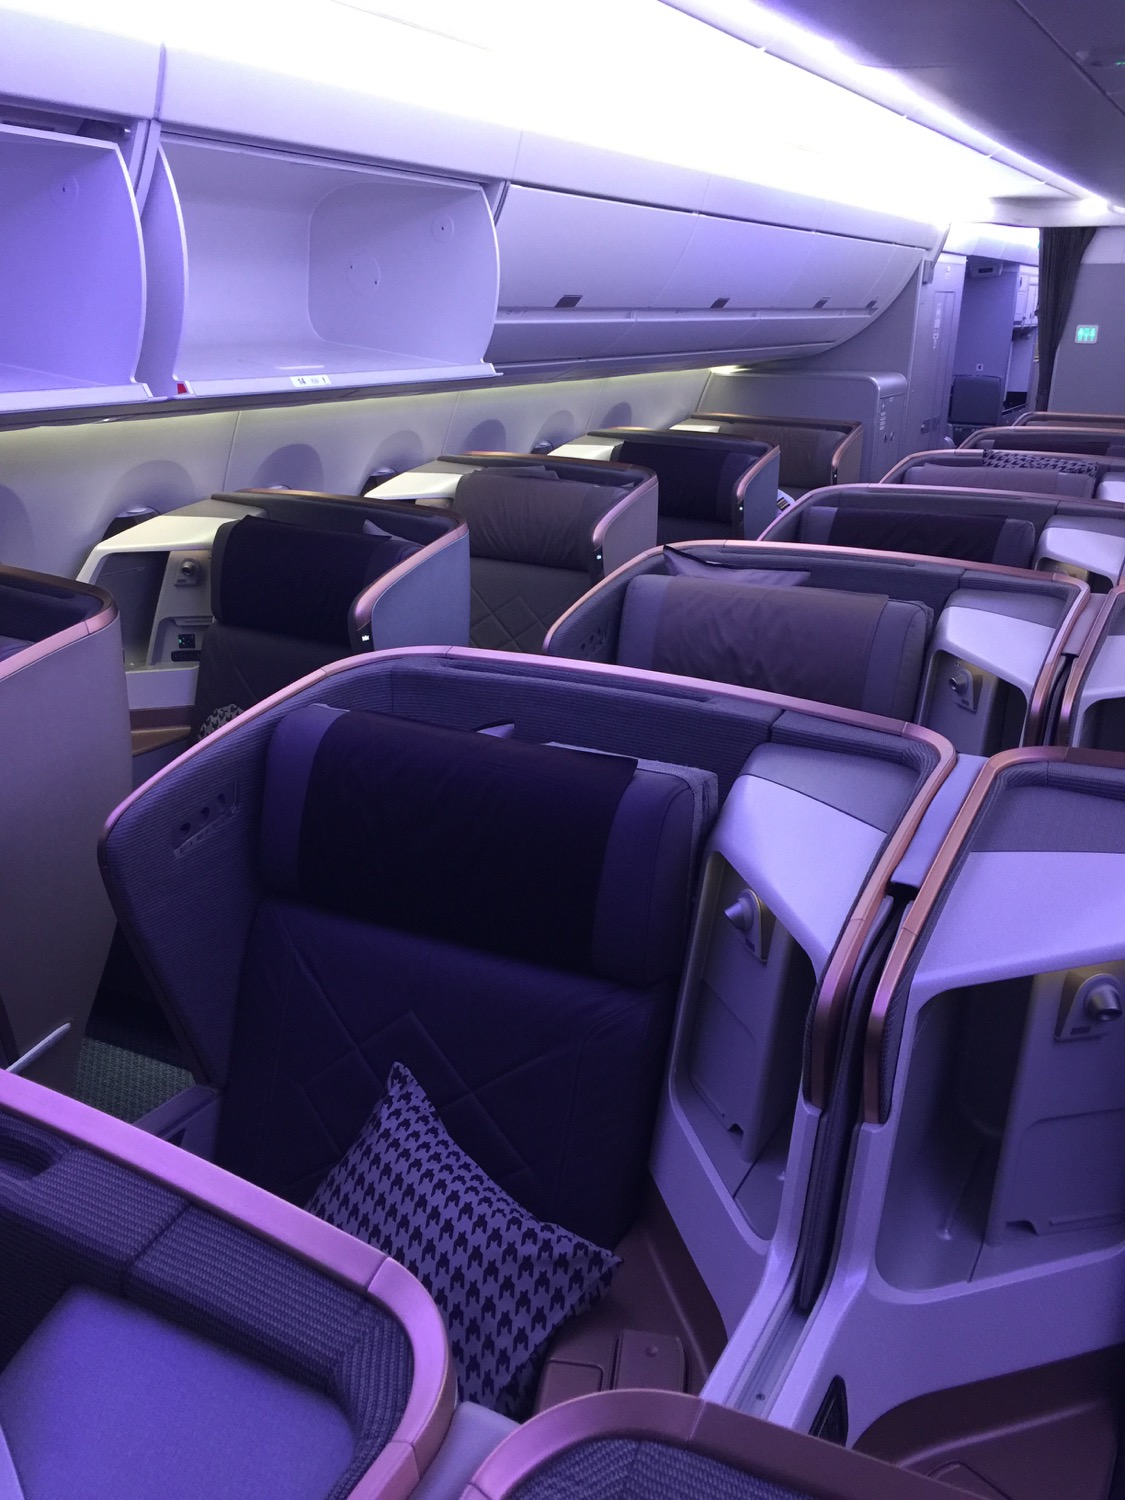 singapore_airline_airbus_350_900_business_class